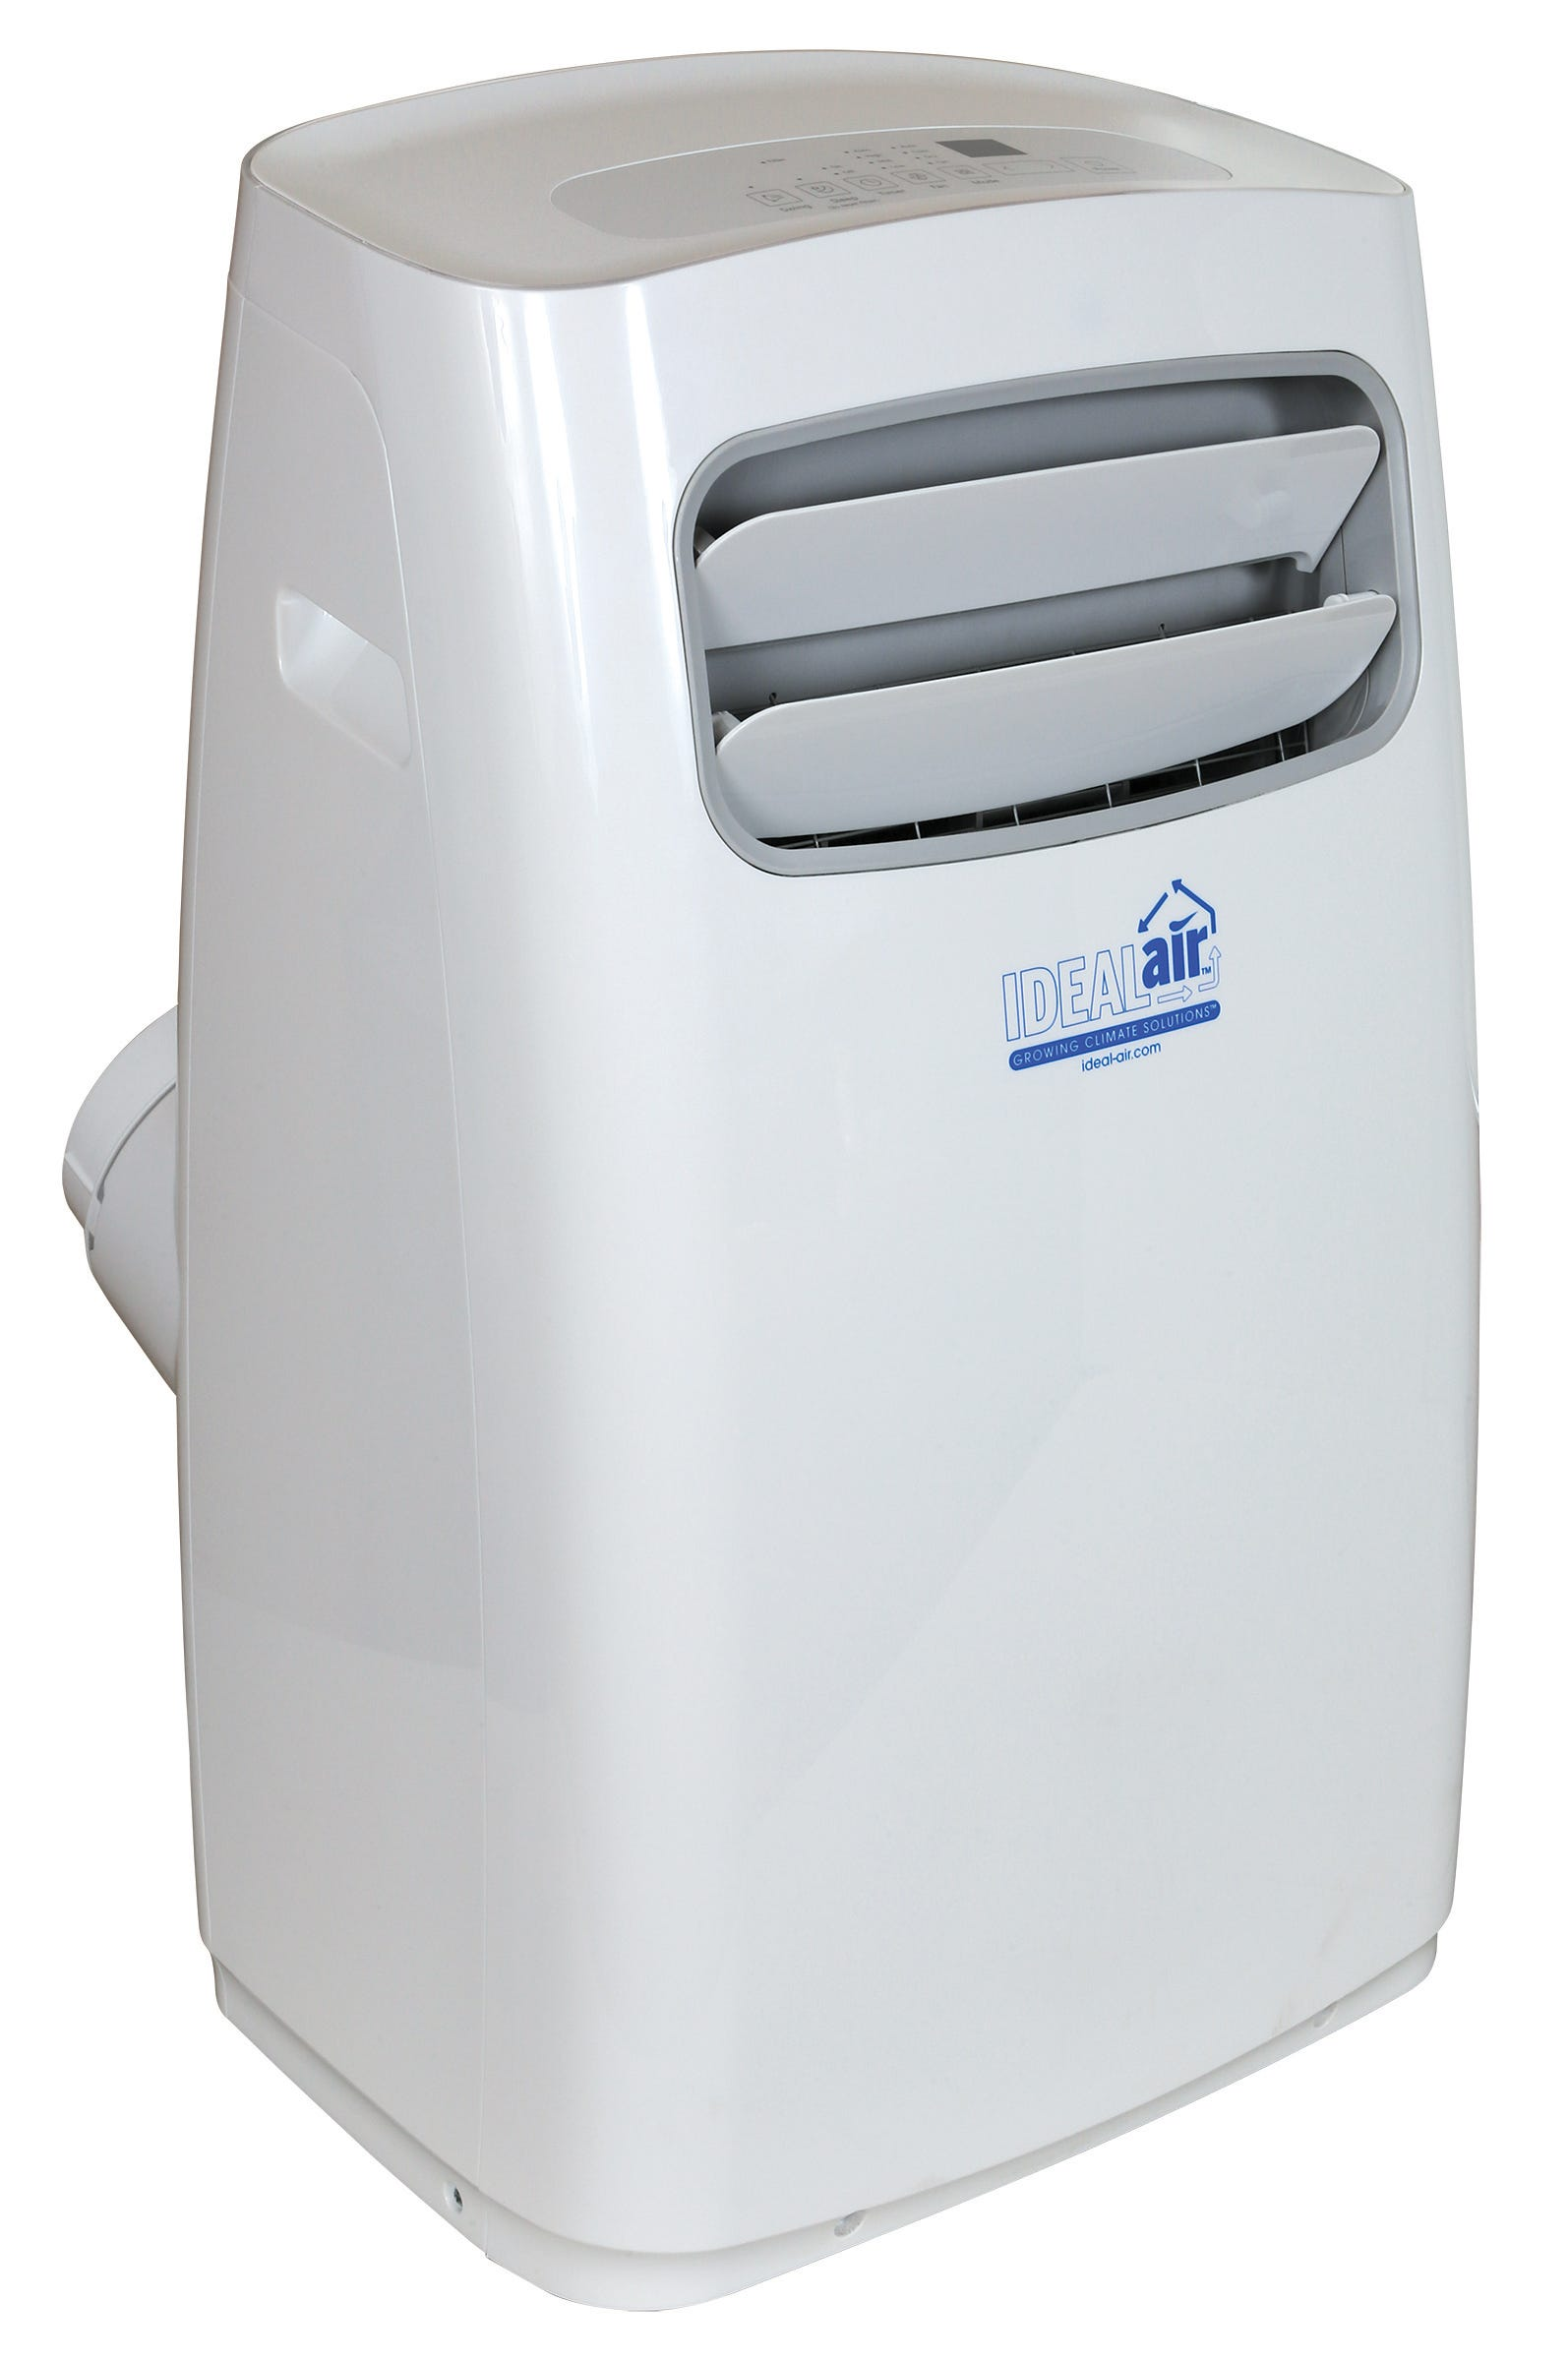 Ideal-Air Dual Hose Portable Air Conditioner 14,000 BTU *DISCONTINUED* This item has been discontinued, Please try our selection of Air Conditioners for an alternative. Ideal-Air Dual Hose Portable Air Conditioner 14,000 BTU The Ideal-Air Dual Hose Portable Air Conditioner 14,000 BTU operates with one hose for the condenser intake and the other is for the condenser hot air discharge. It has an auto restart function. The Ideal-Air Dual Hose Portable Air Conditioner has easy to control with a digital control panel and a handheld remote control thermostat. The filter is removable and washable. It has a heavy duty compressor with a 3-speed fan motor. It uses a self-evaporative condensation removal system, this system helps to reduce the need for external drainage as condensate water is used in the cooling process. Condensate water is expelled as a fine mist through the hot air exhaust hose. The Ideal-Air Dual Hose Portable AC includes: 2 flexible duct hoses (5 ft each) 2-piece adjustable window insert 1 foam window insert seal and 4 duct and hose fittings Supply voltage: 115 Volt/60 Hz/11.8 Amps/1520 Watts/14,000 BTU. Ideal-Air Dual Hose Portable AC specifications: Dehumidification removal 70 pints per day (24 hour period). Supply voltage: 115 Volt/60 Hz/11.8 Amps/1520 Watts/14,000 BTU.